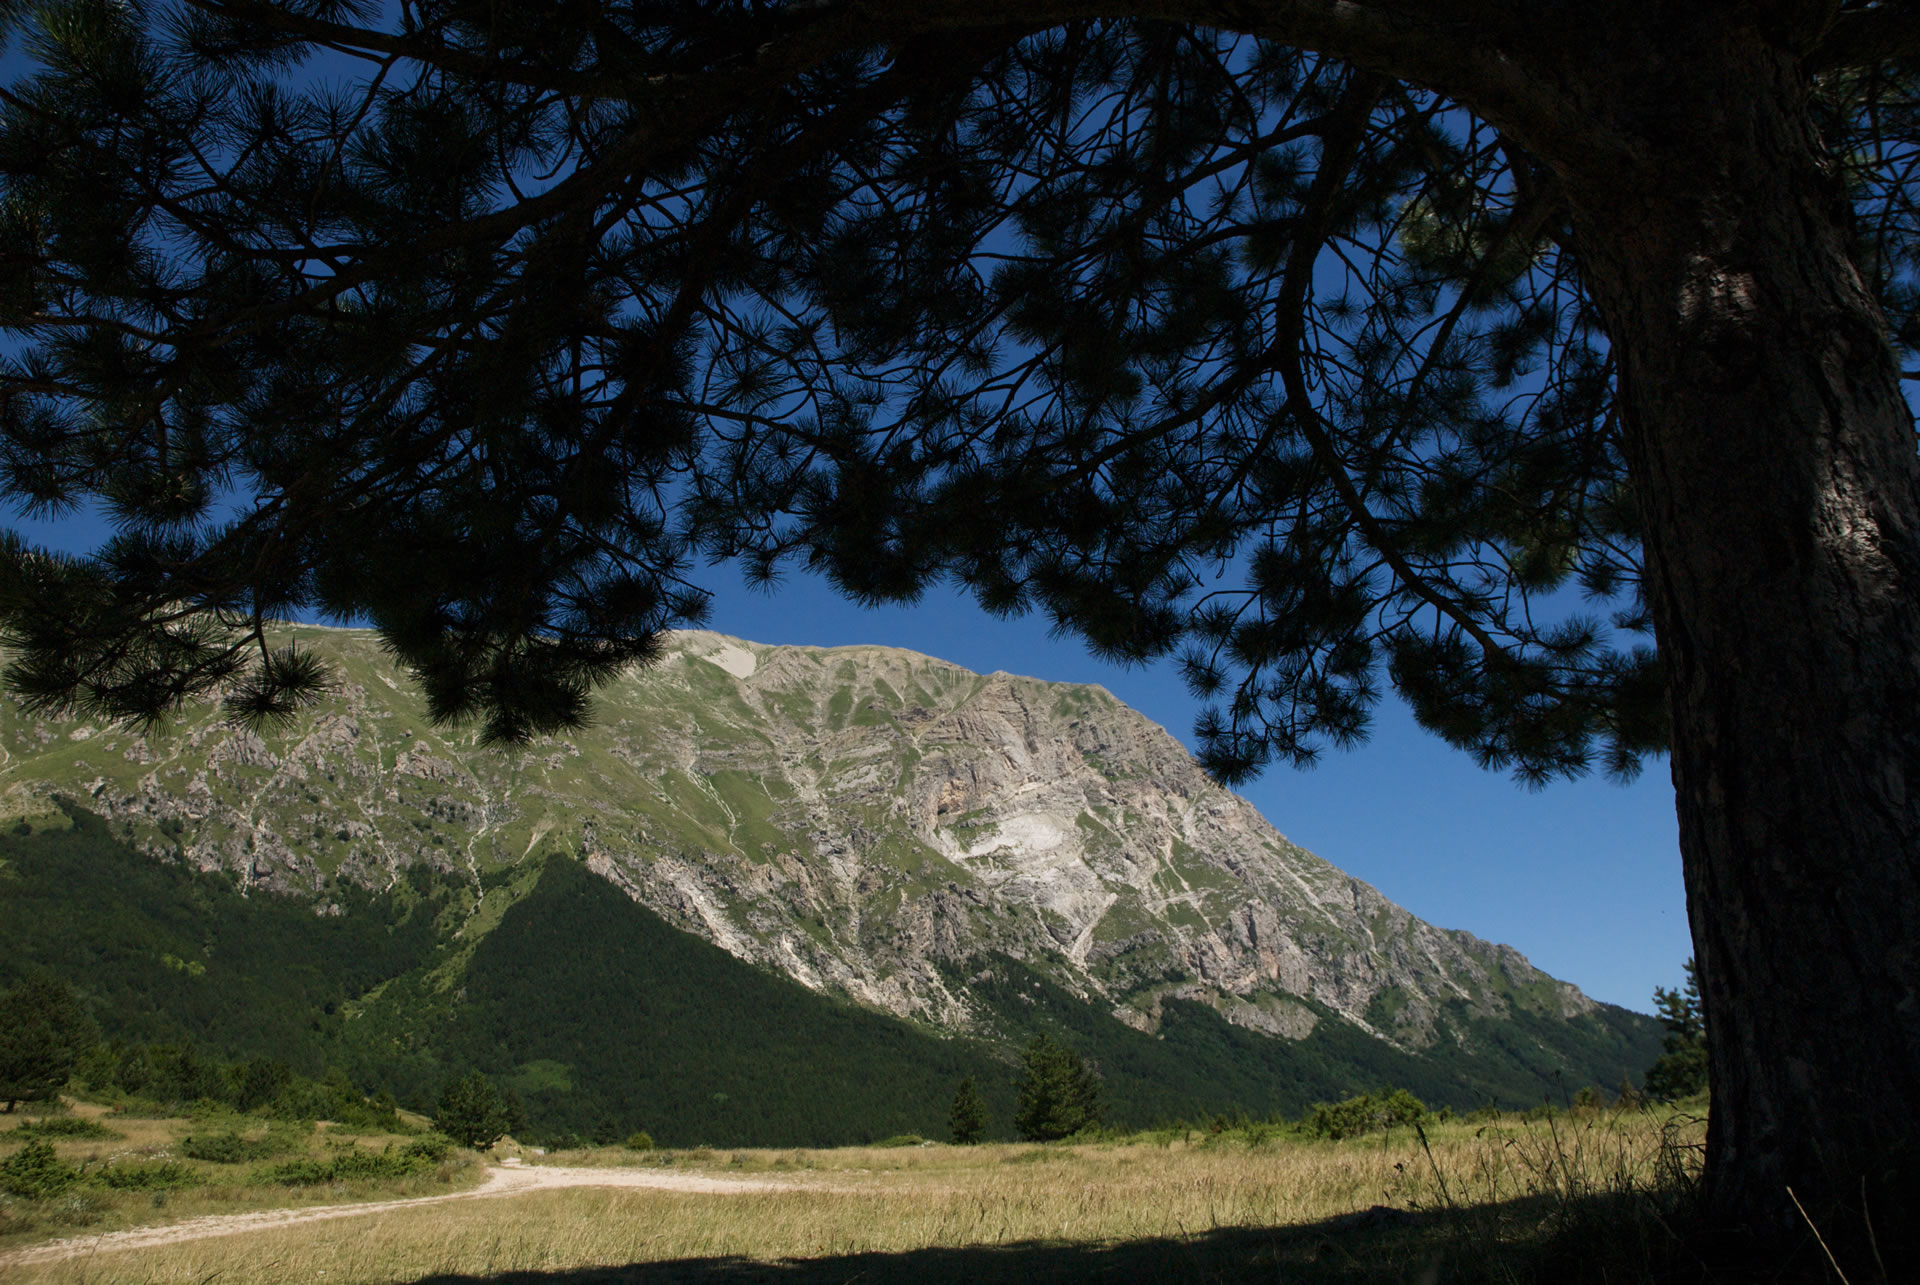 Trekking on the Sibillini Mountains